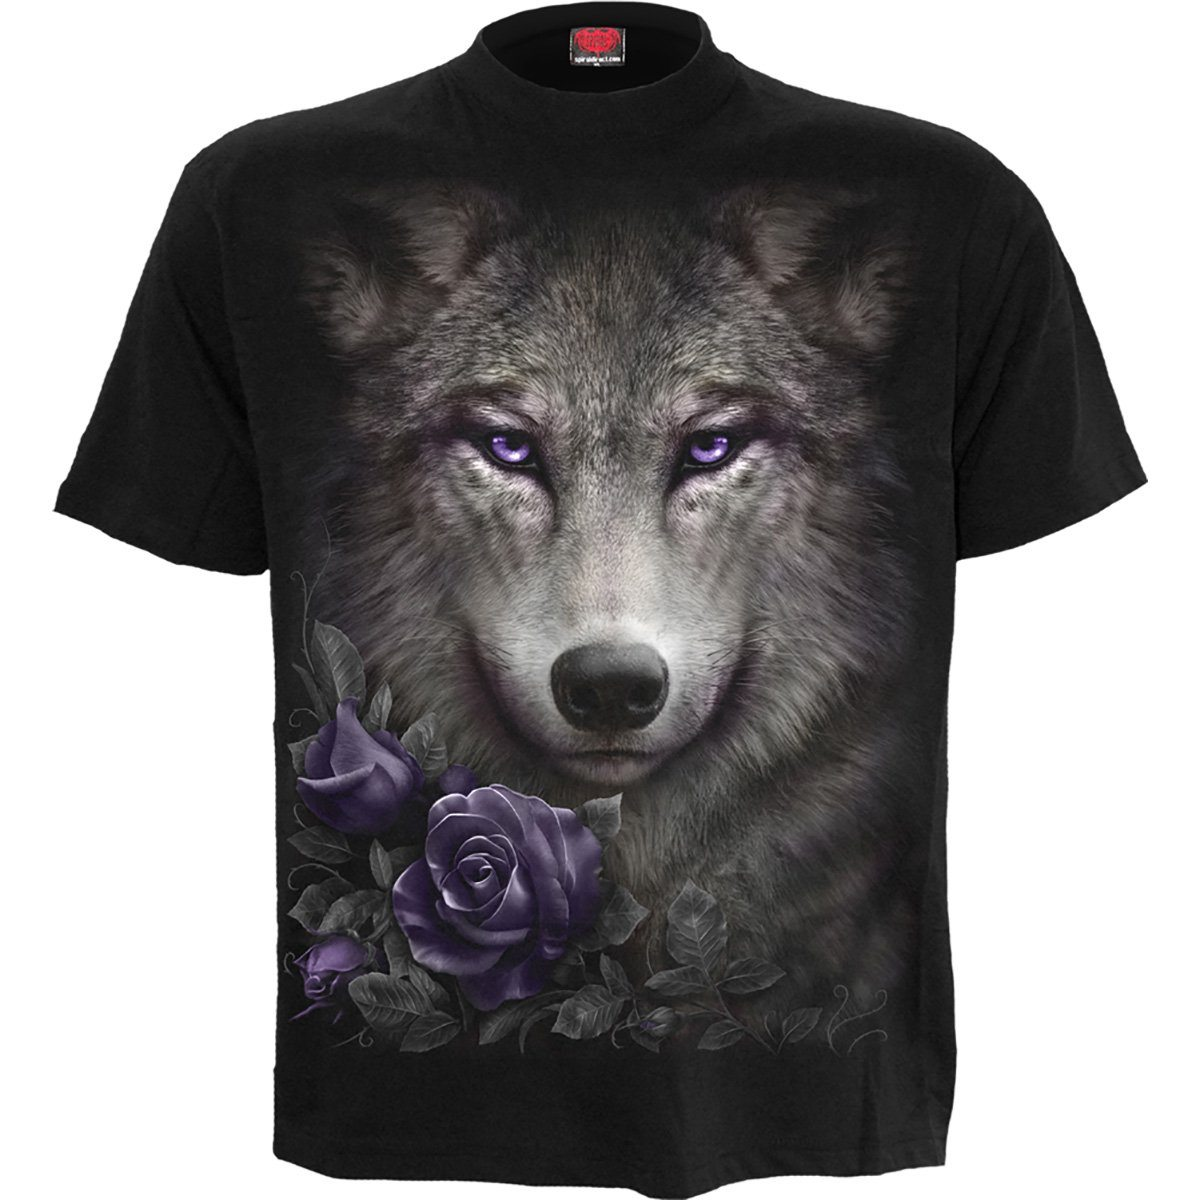 Wolf Purple Rose Women's Black T-Shirt - Rebels Depot